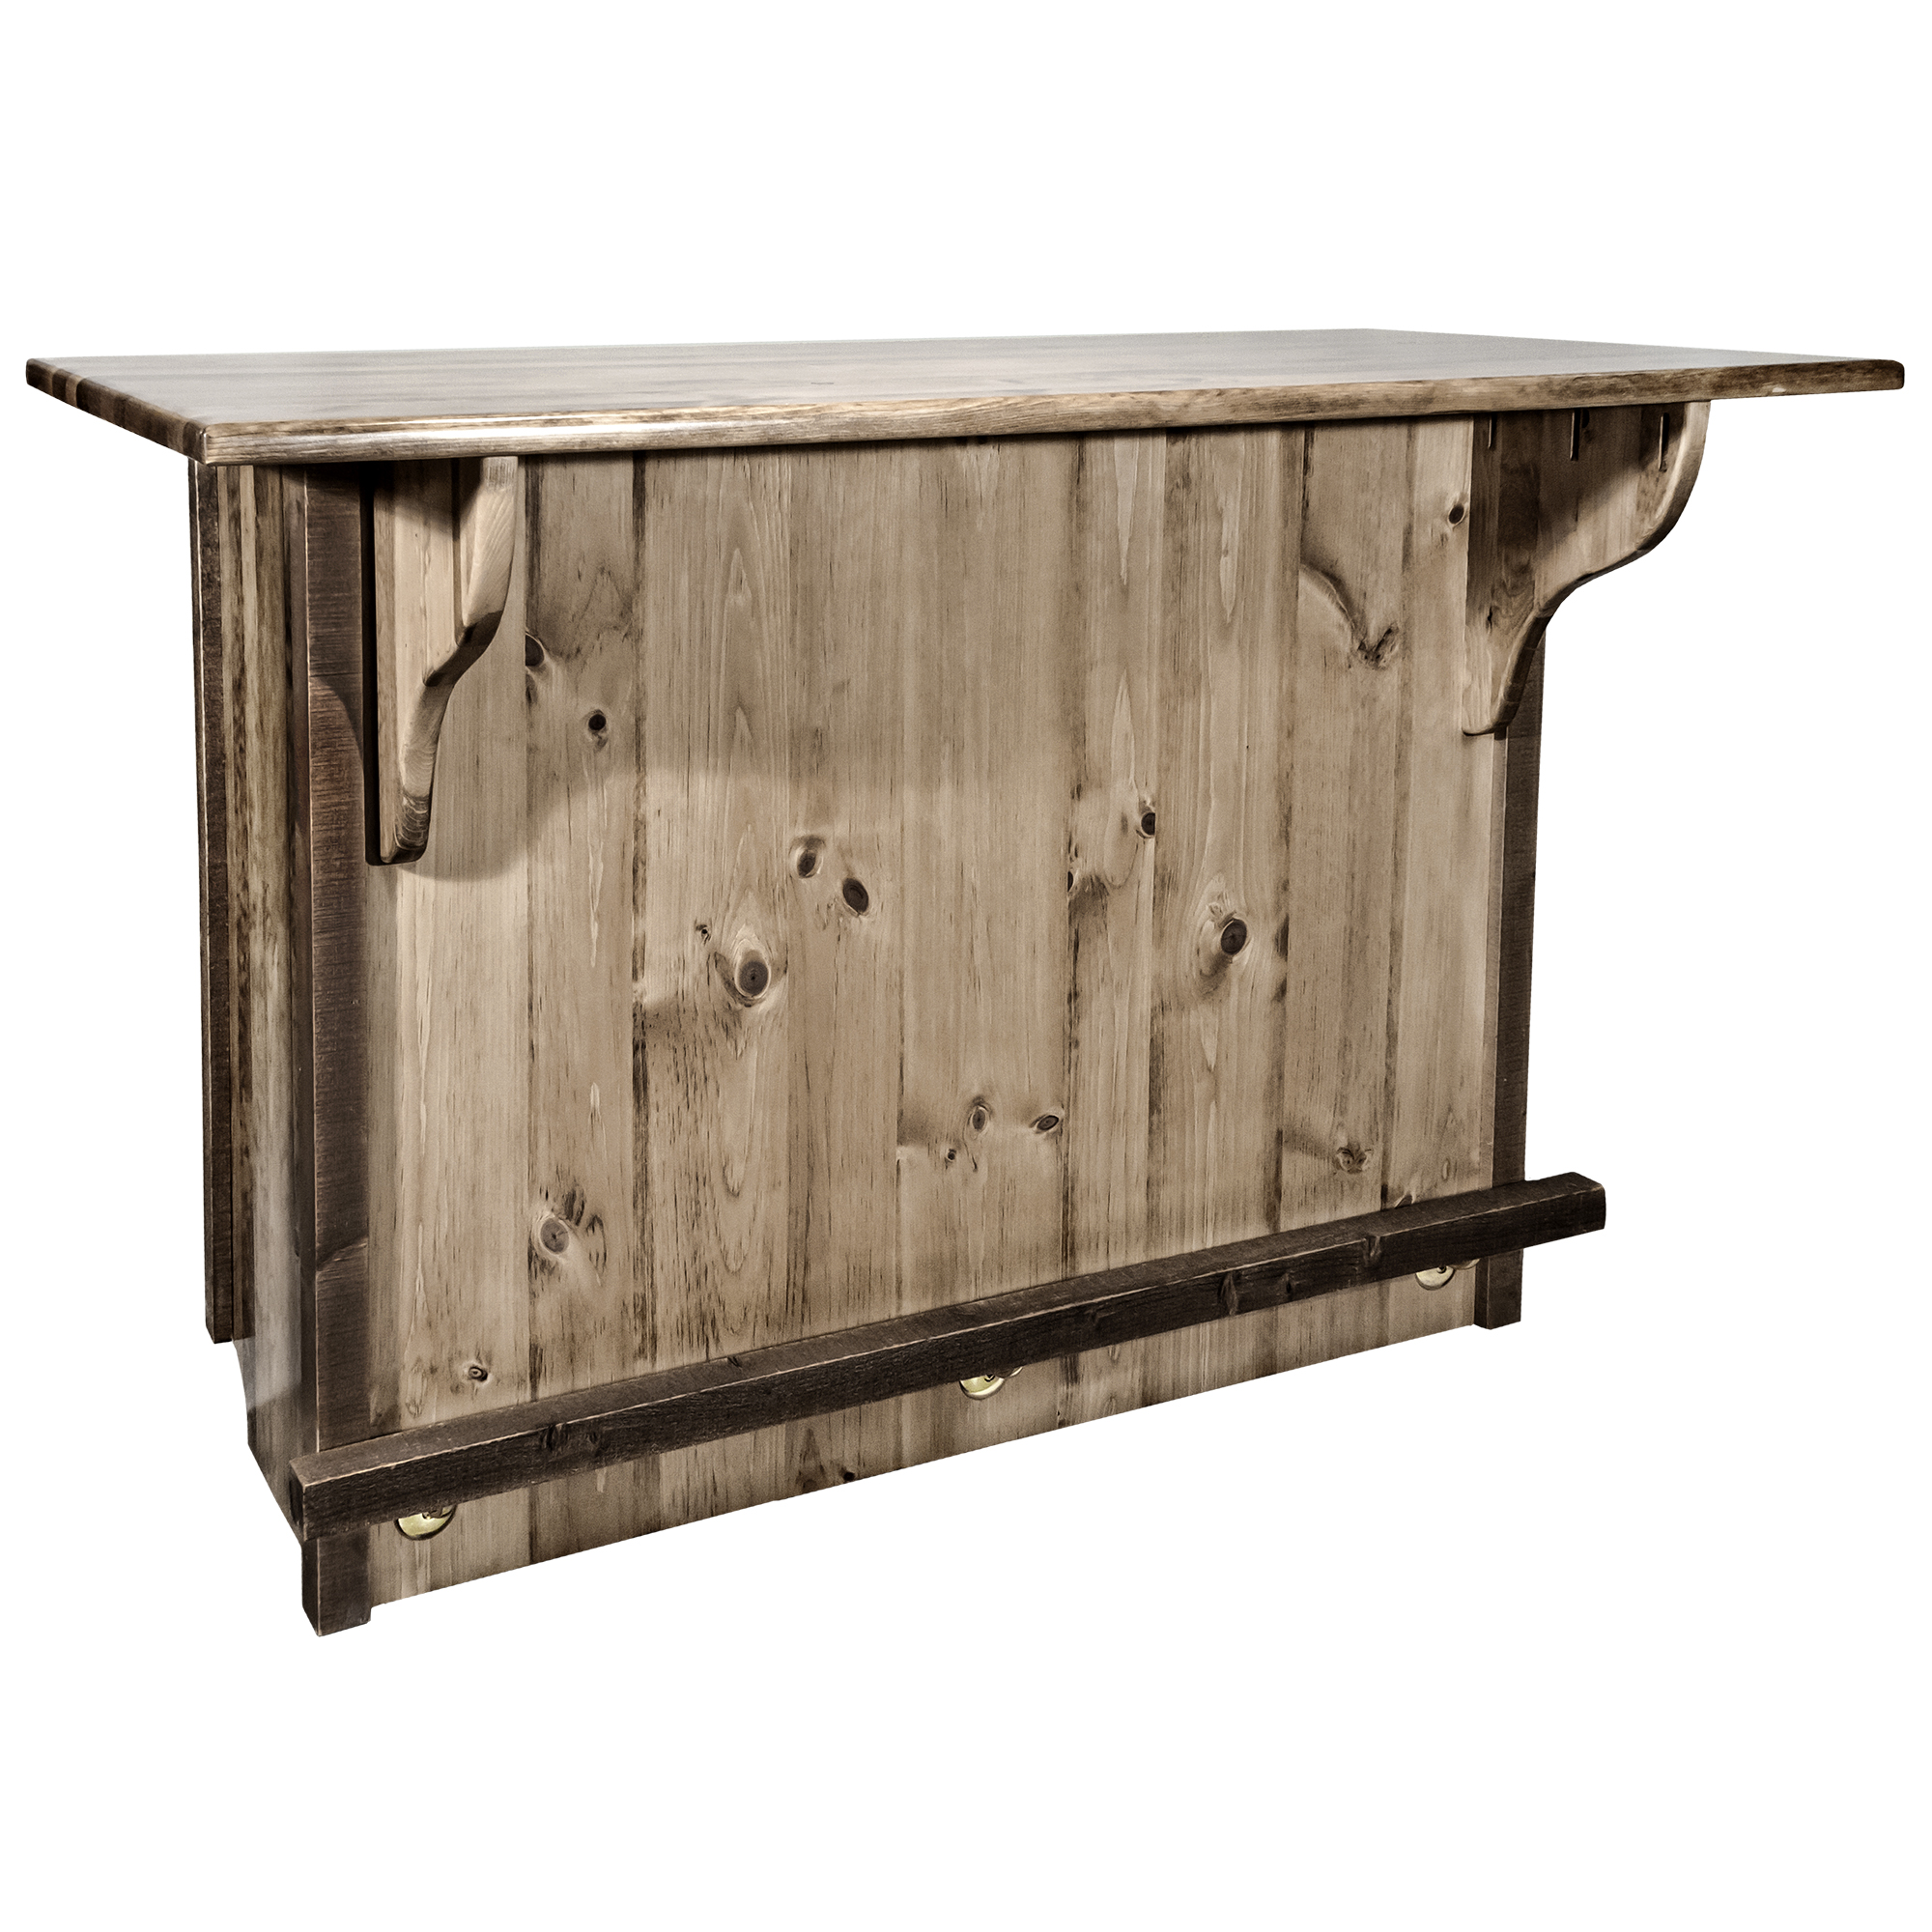 Homestead Collection Deluxe Bar with Foot Rail, Stain & Clear Lacquer Finish